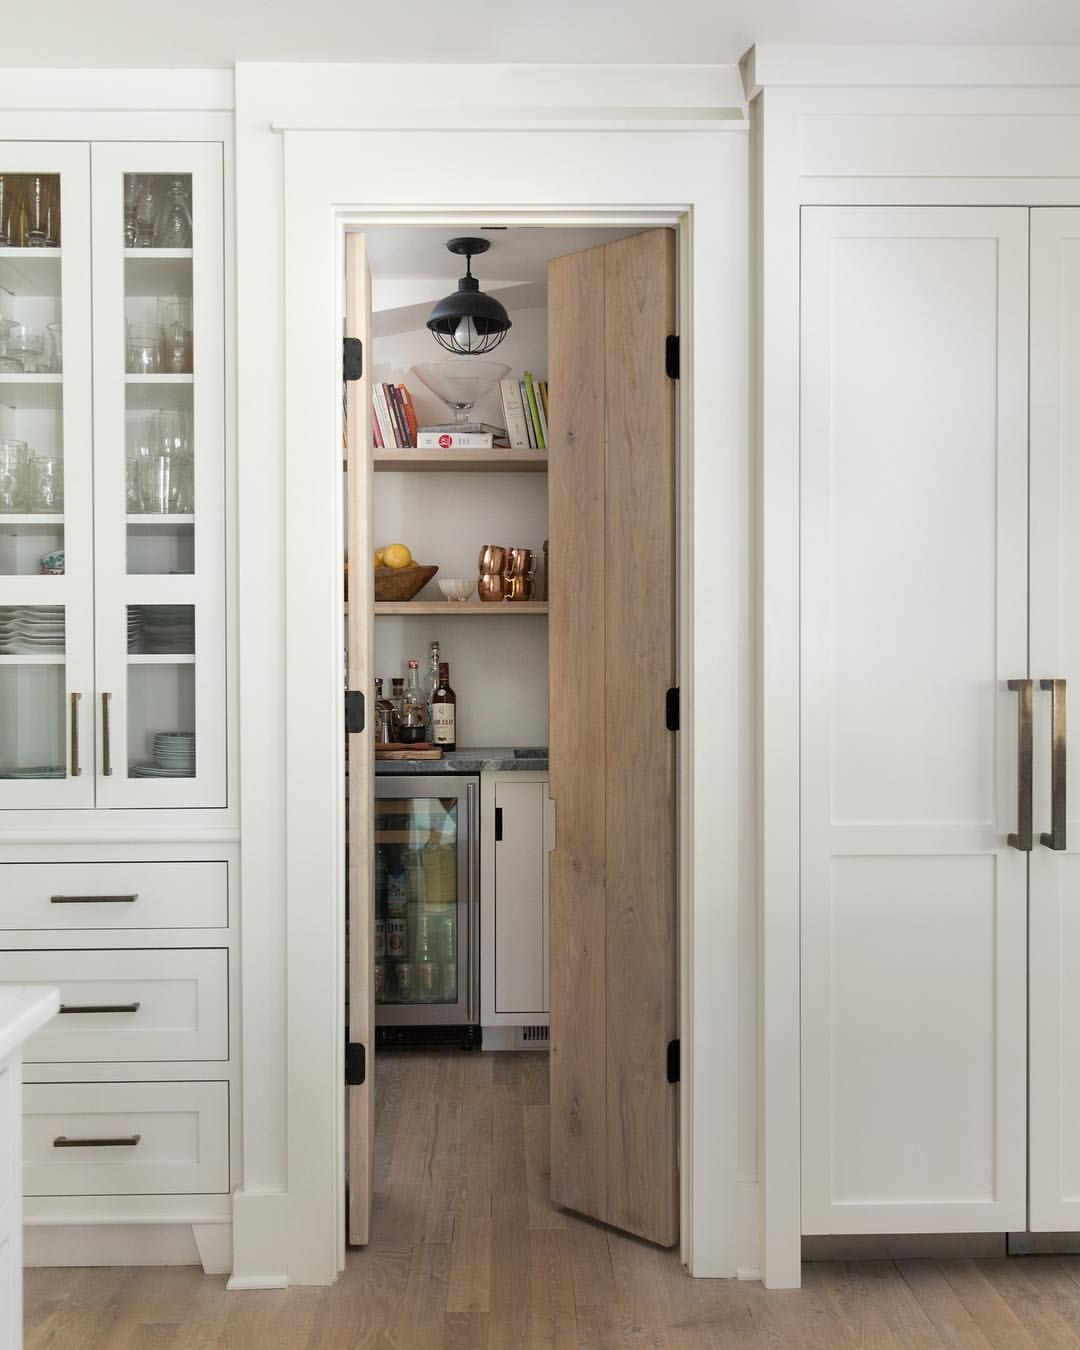 Woodworking Plans Kitchen Pantry: White Kitchen, Wood Pantry Door, White Refrigerator Doors